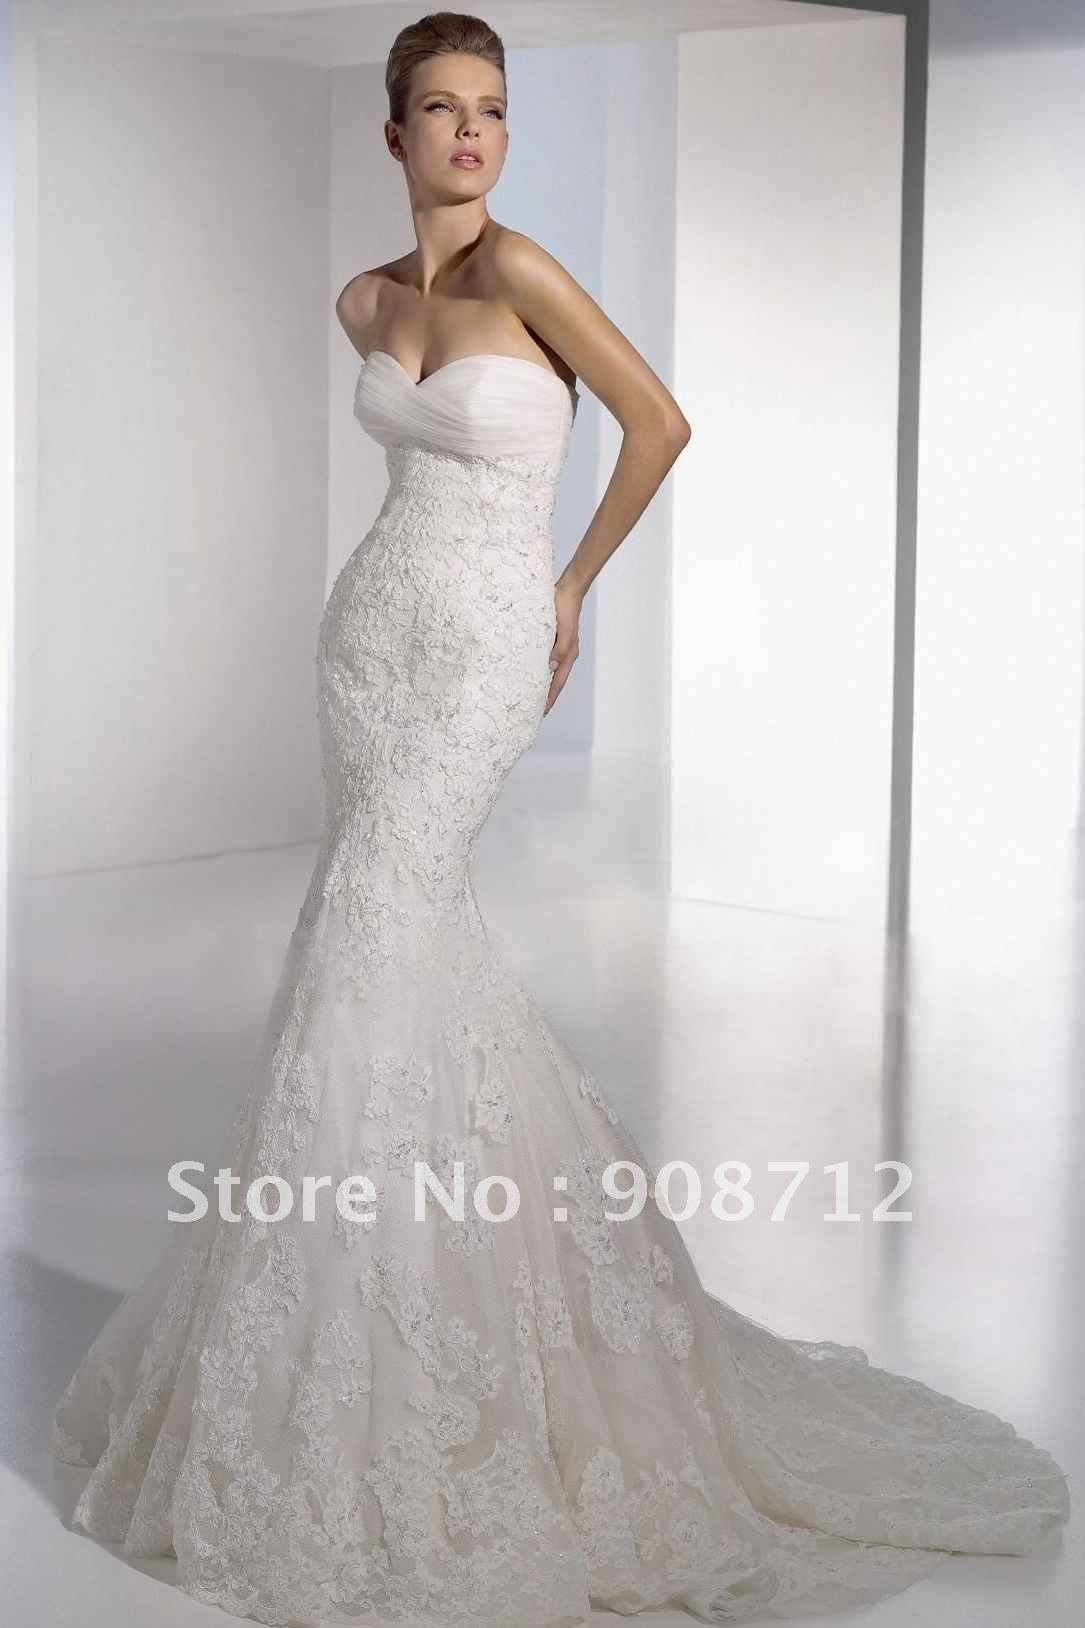 strapless white mermaid wedding dress white mermaid wedding dresses Mermaid Designer Wedding Gowns Design Your Dress